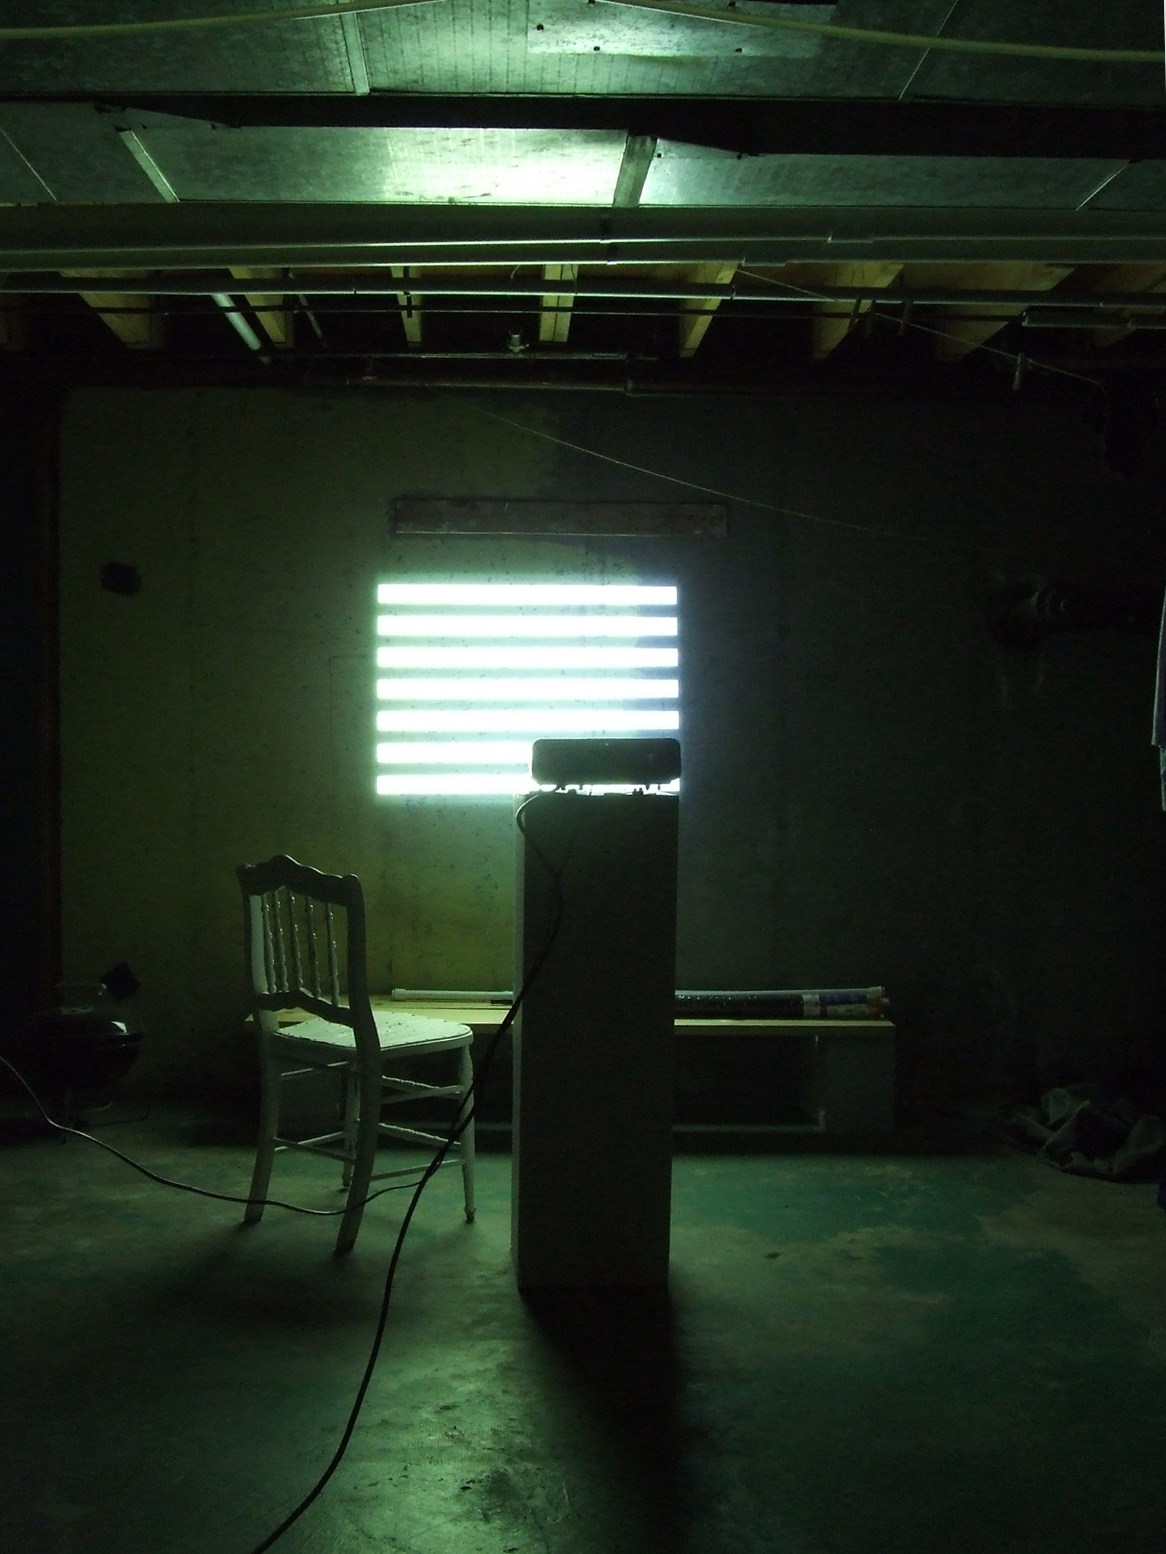 Perfect, Straight Bars of Light in my Basement (For Artists James Hampton and Donald Judd), 2009